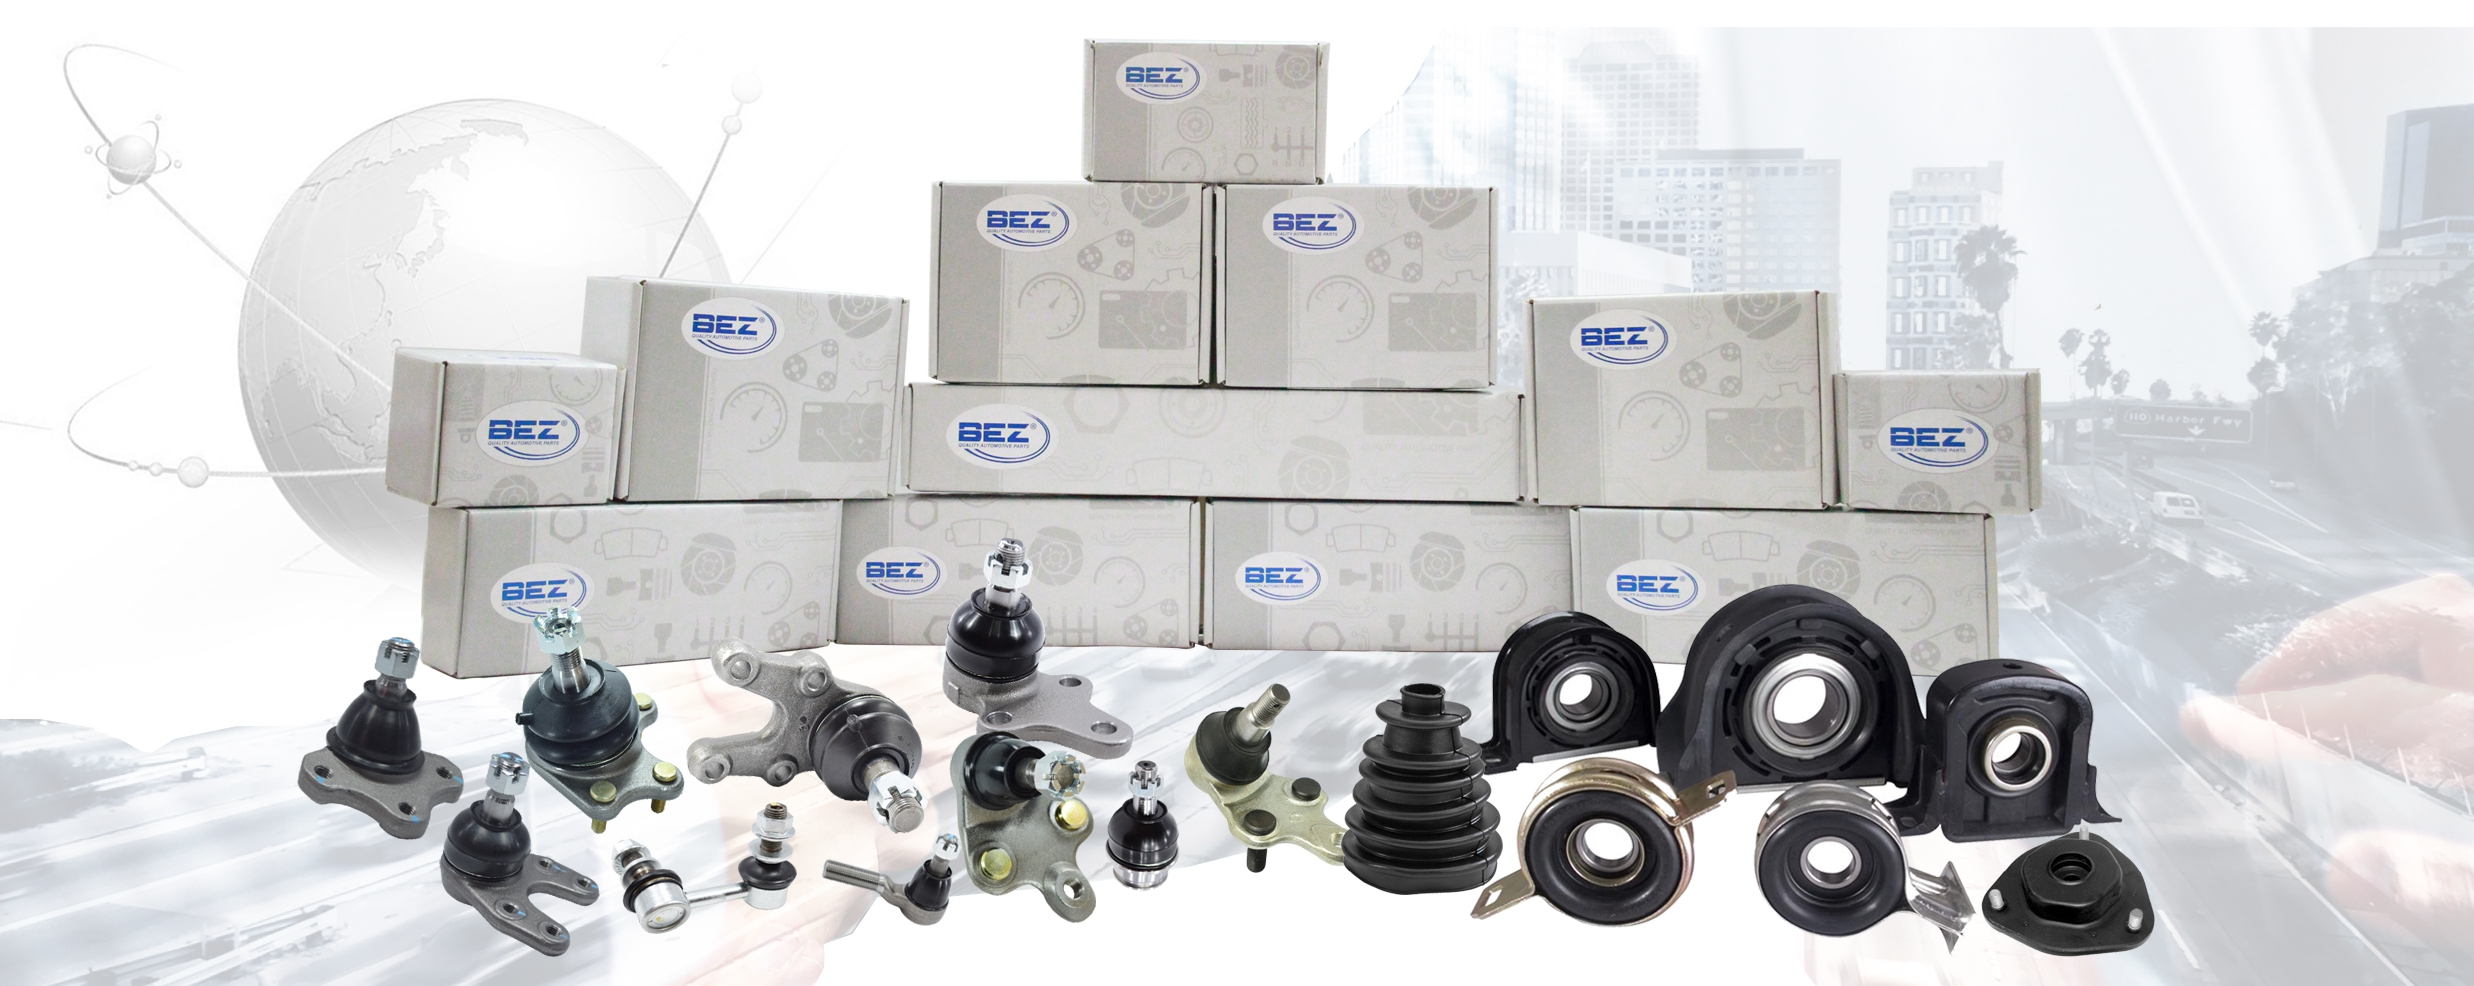 BEZ - Quality Automotive Parts from Thailand